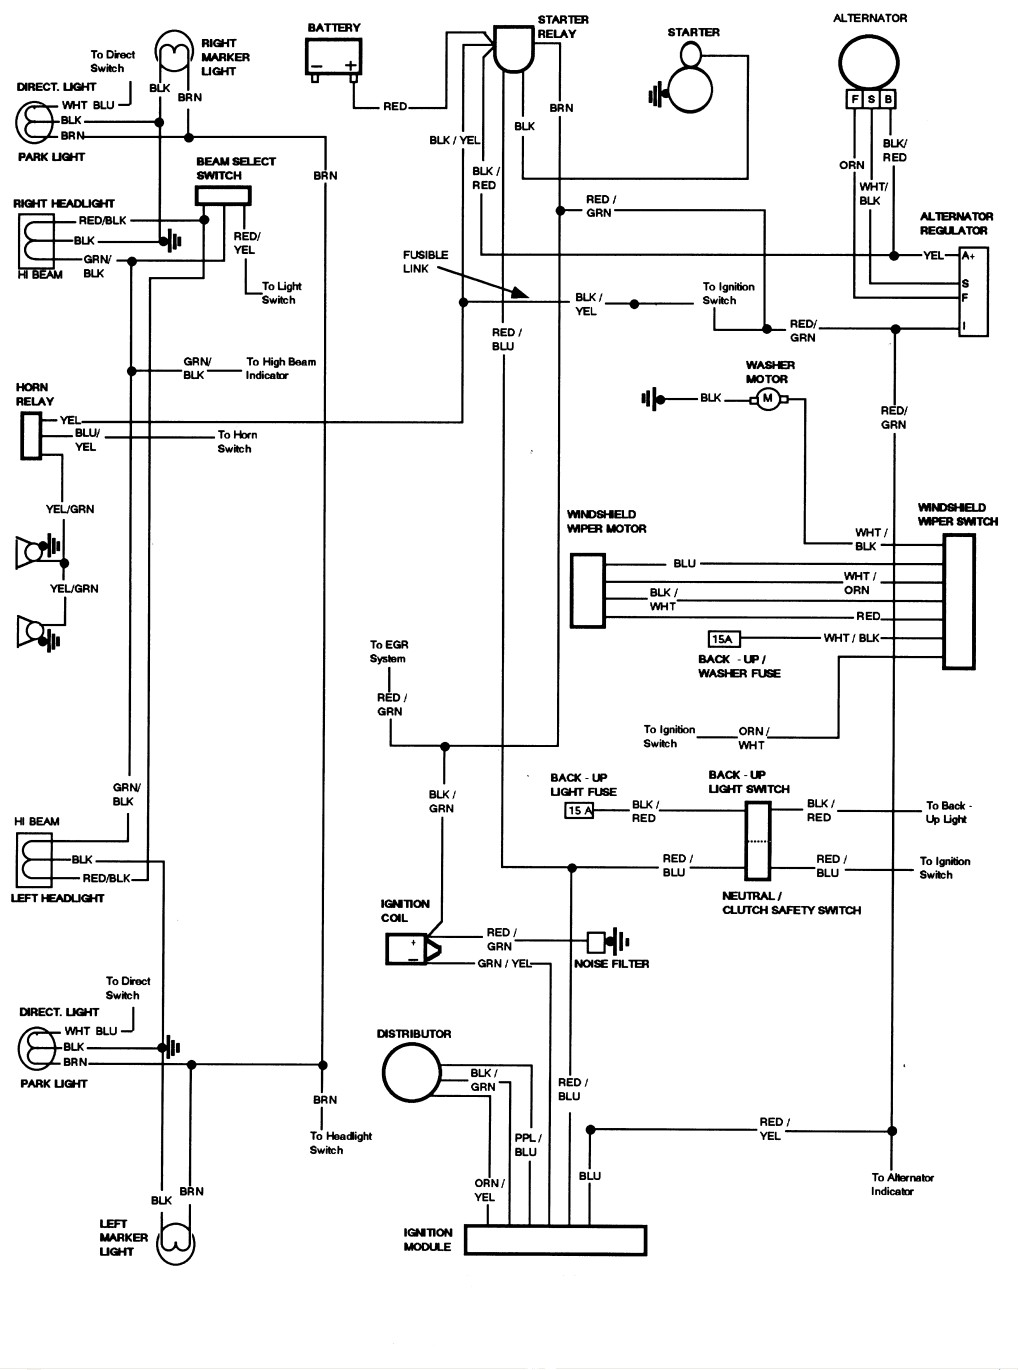 i need a schematic for a electronic spark controll for a